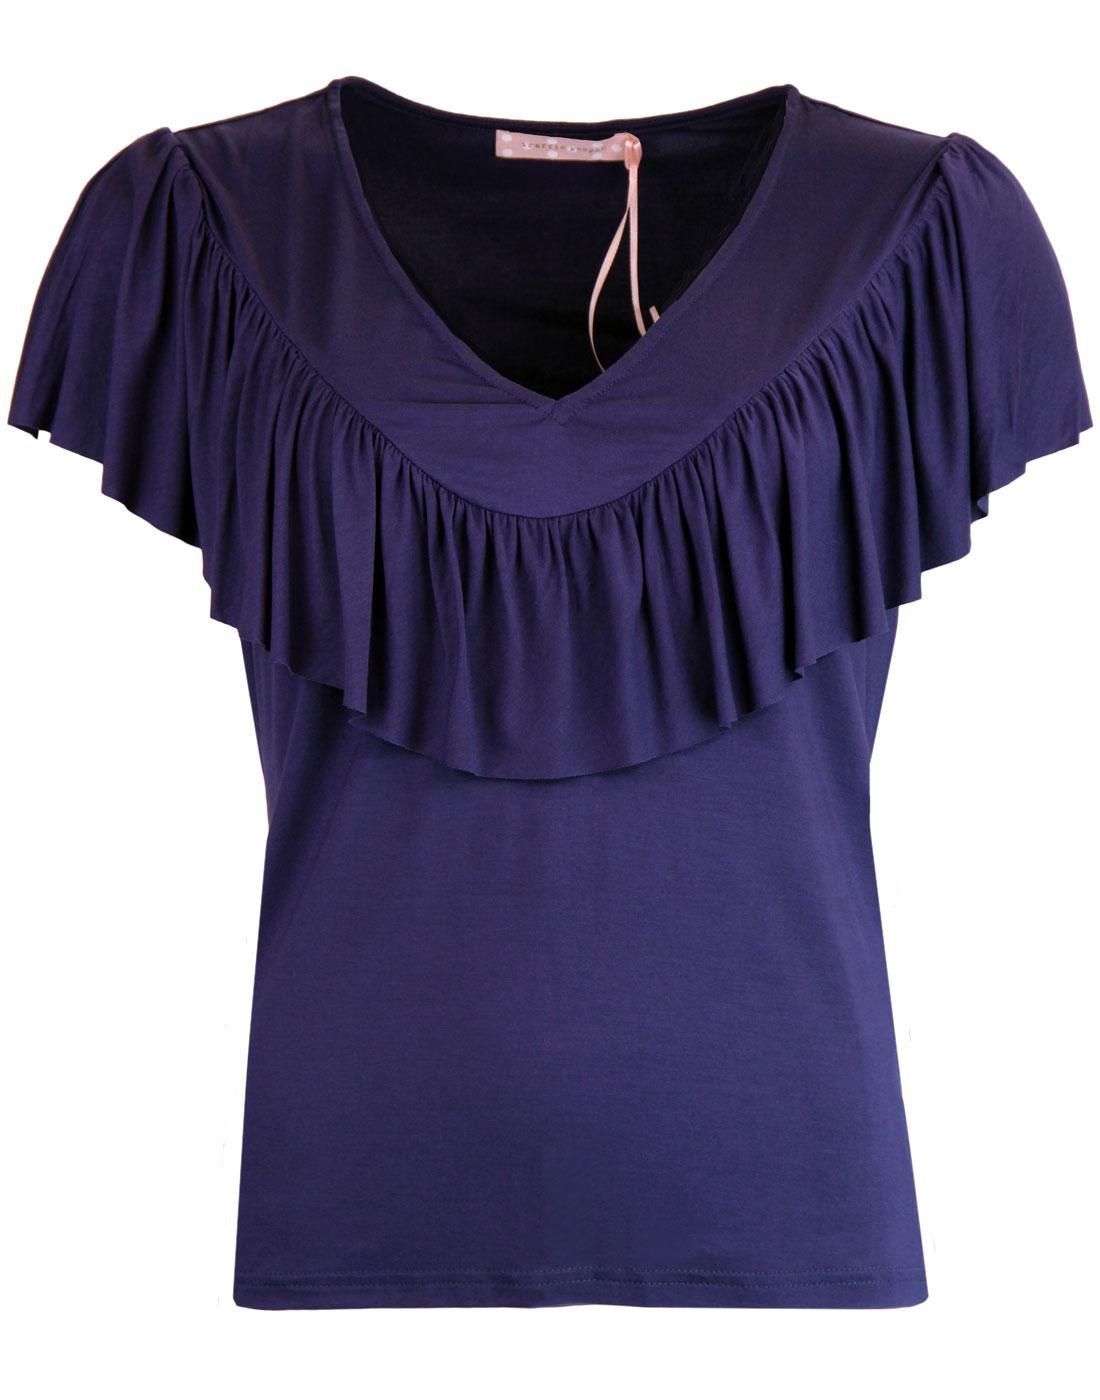 TRAFFIC PEOPLE Thrill Me Retro 60s Frill Top NAVY